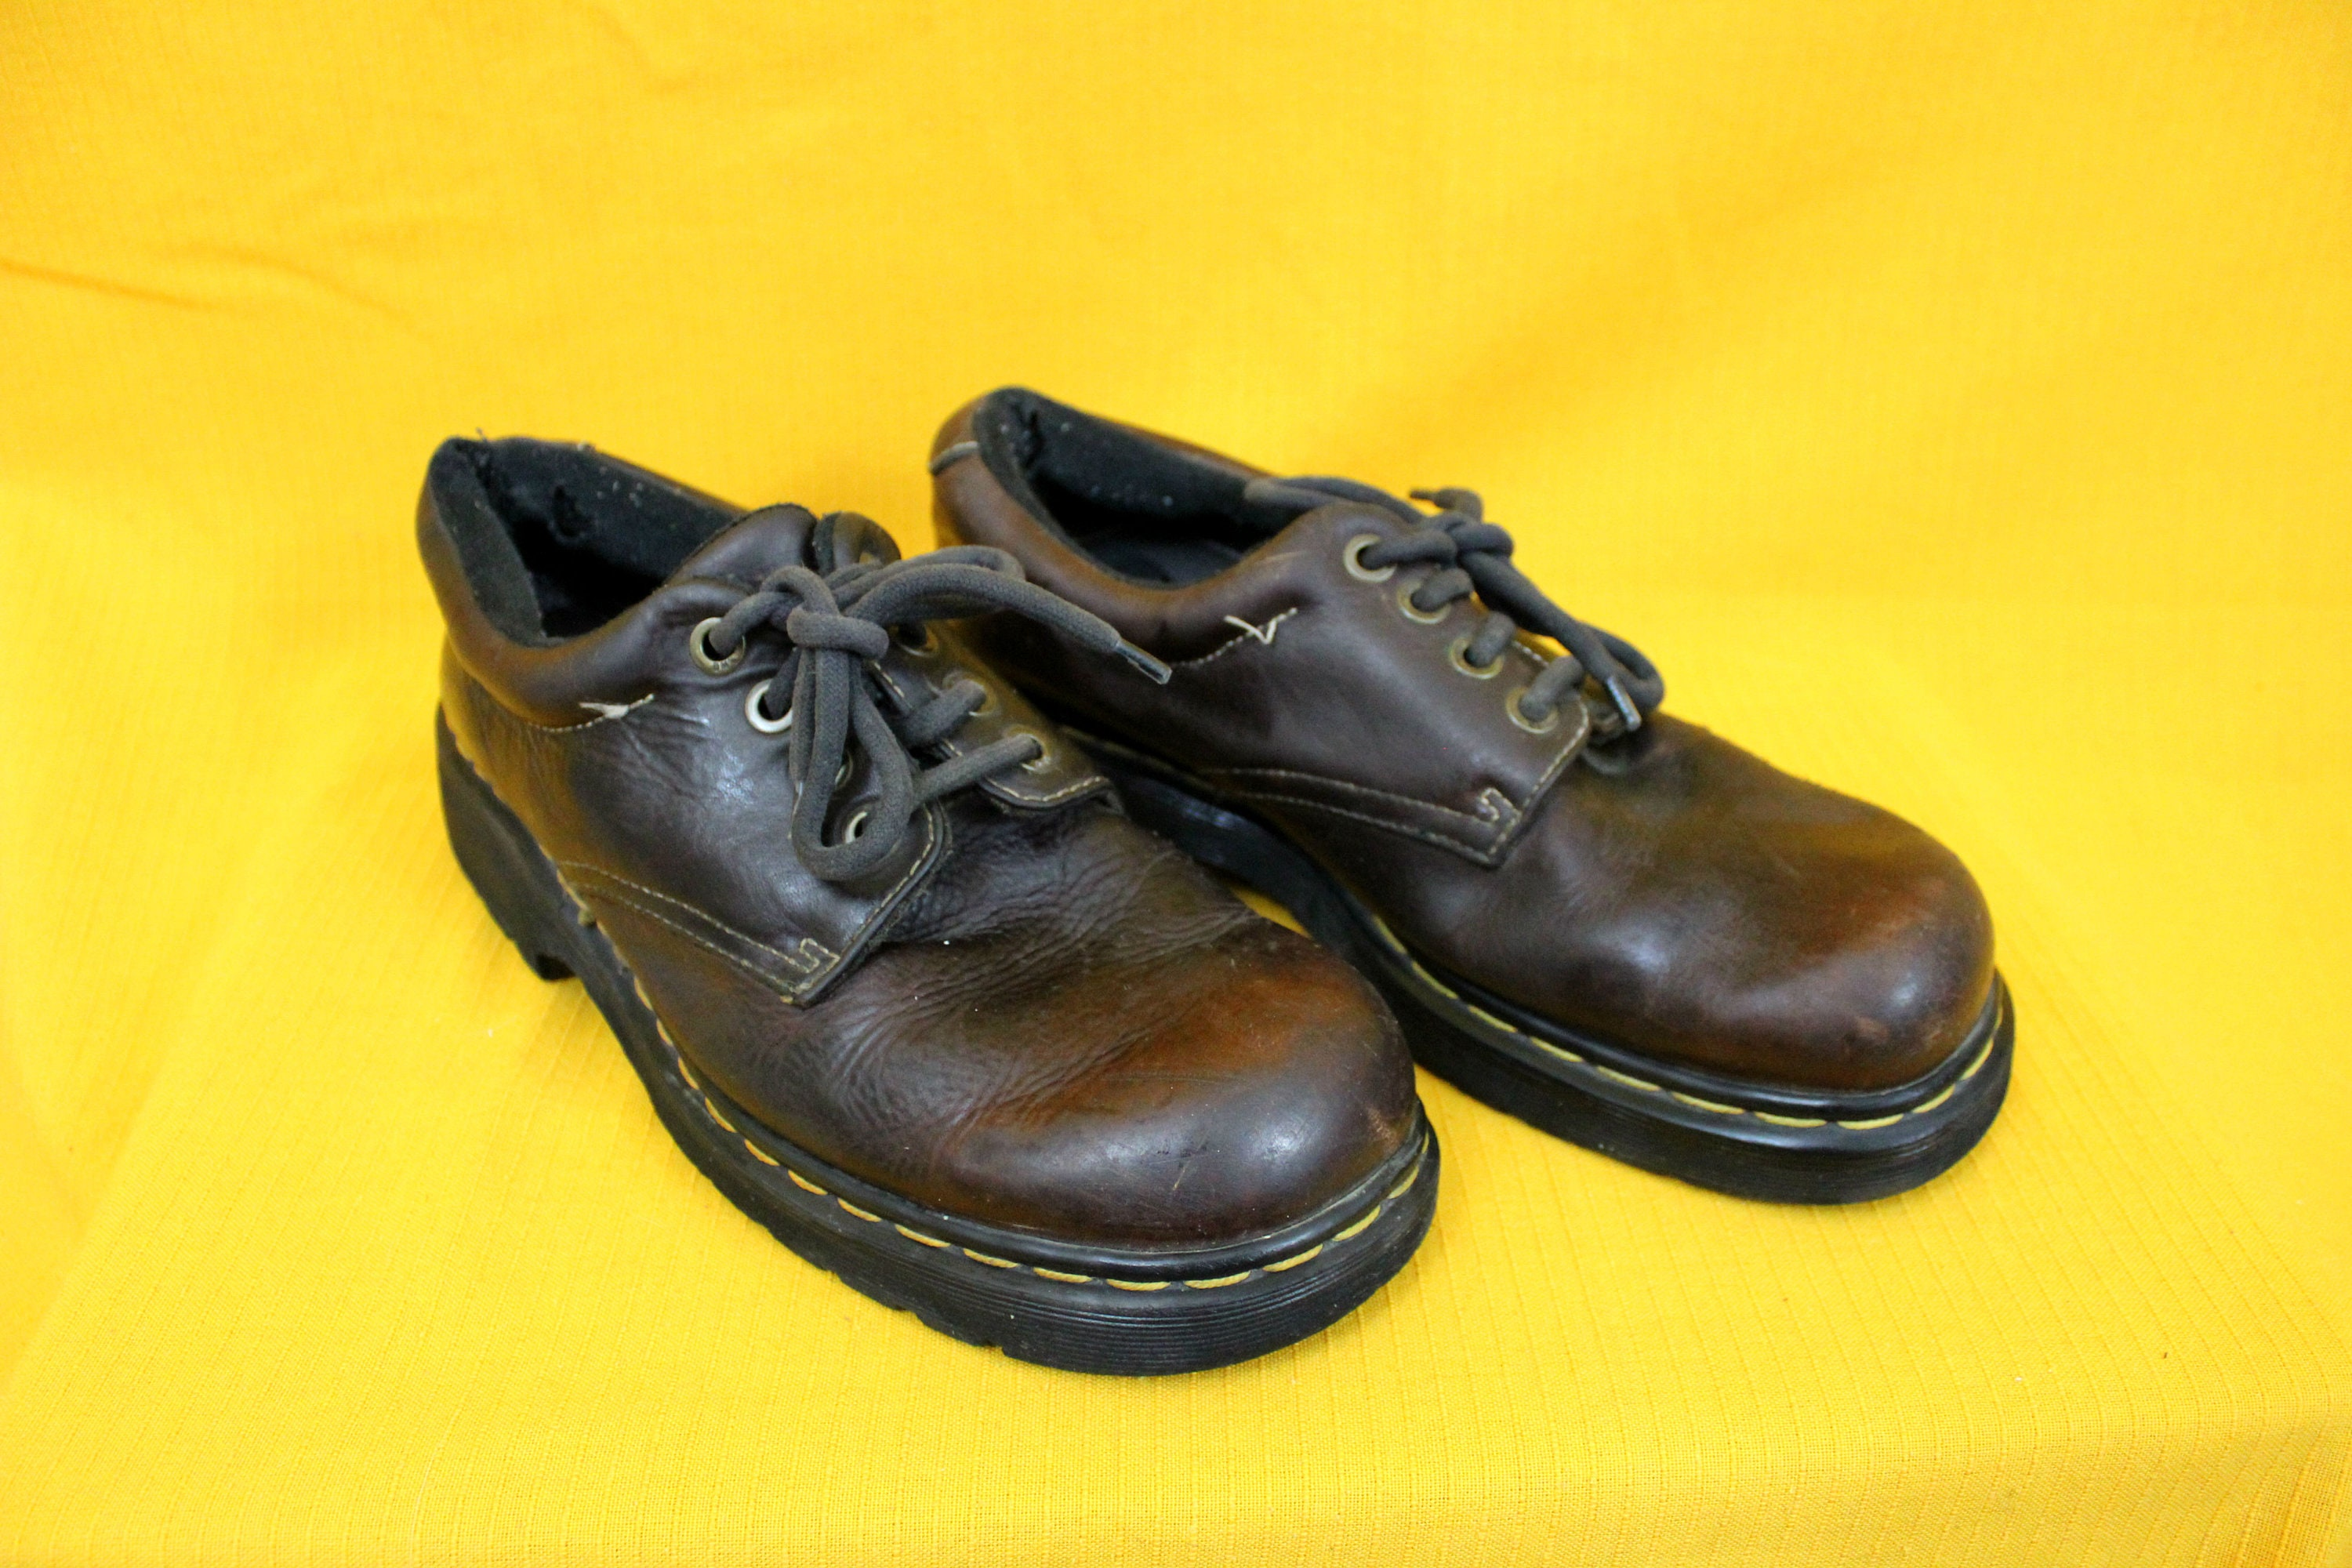 4a8fc2e0e29 Doc Marten Boots. US Mens Size 9 Black Leather Low Top Classic Dr Marten  Low Top Boots. 4 Eyelet Steel Toe Brown Leather Punk Ska Shoes